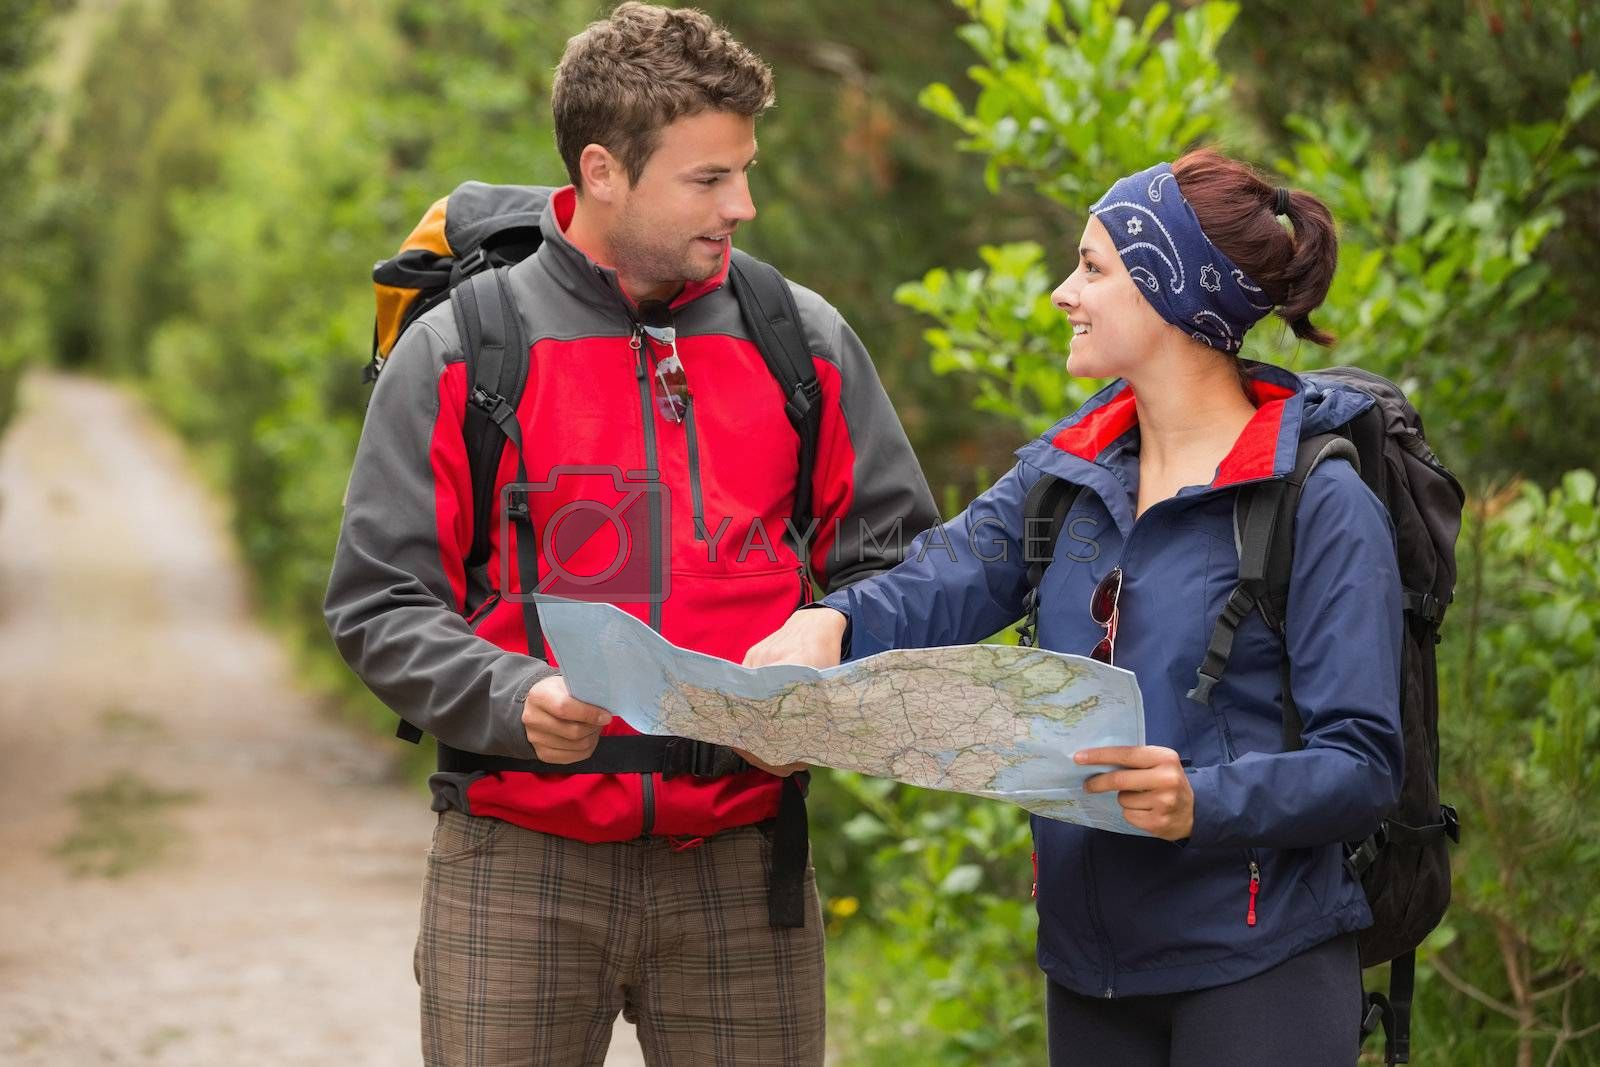 Smiling couple going on a hike together looking at map by Wavebreakmedia